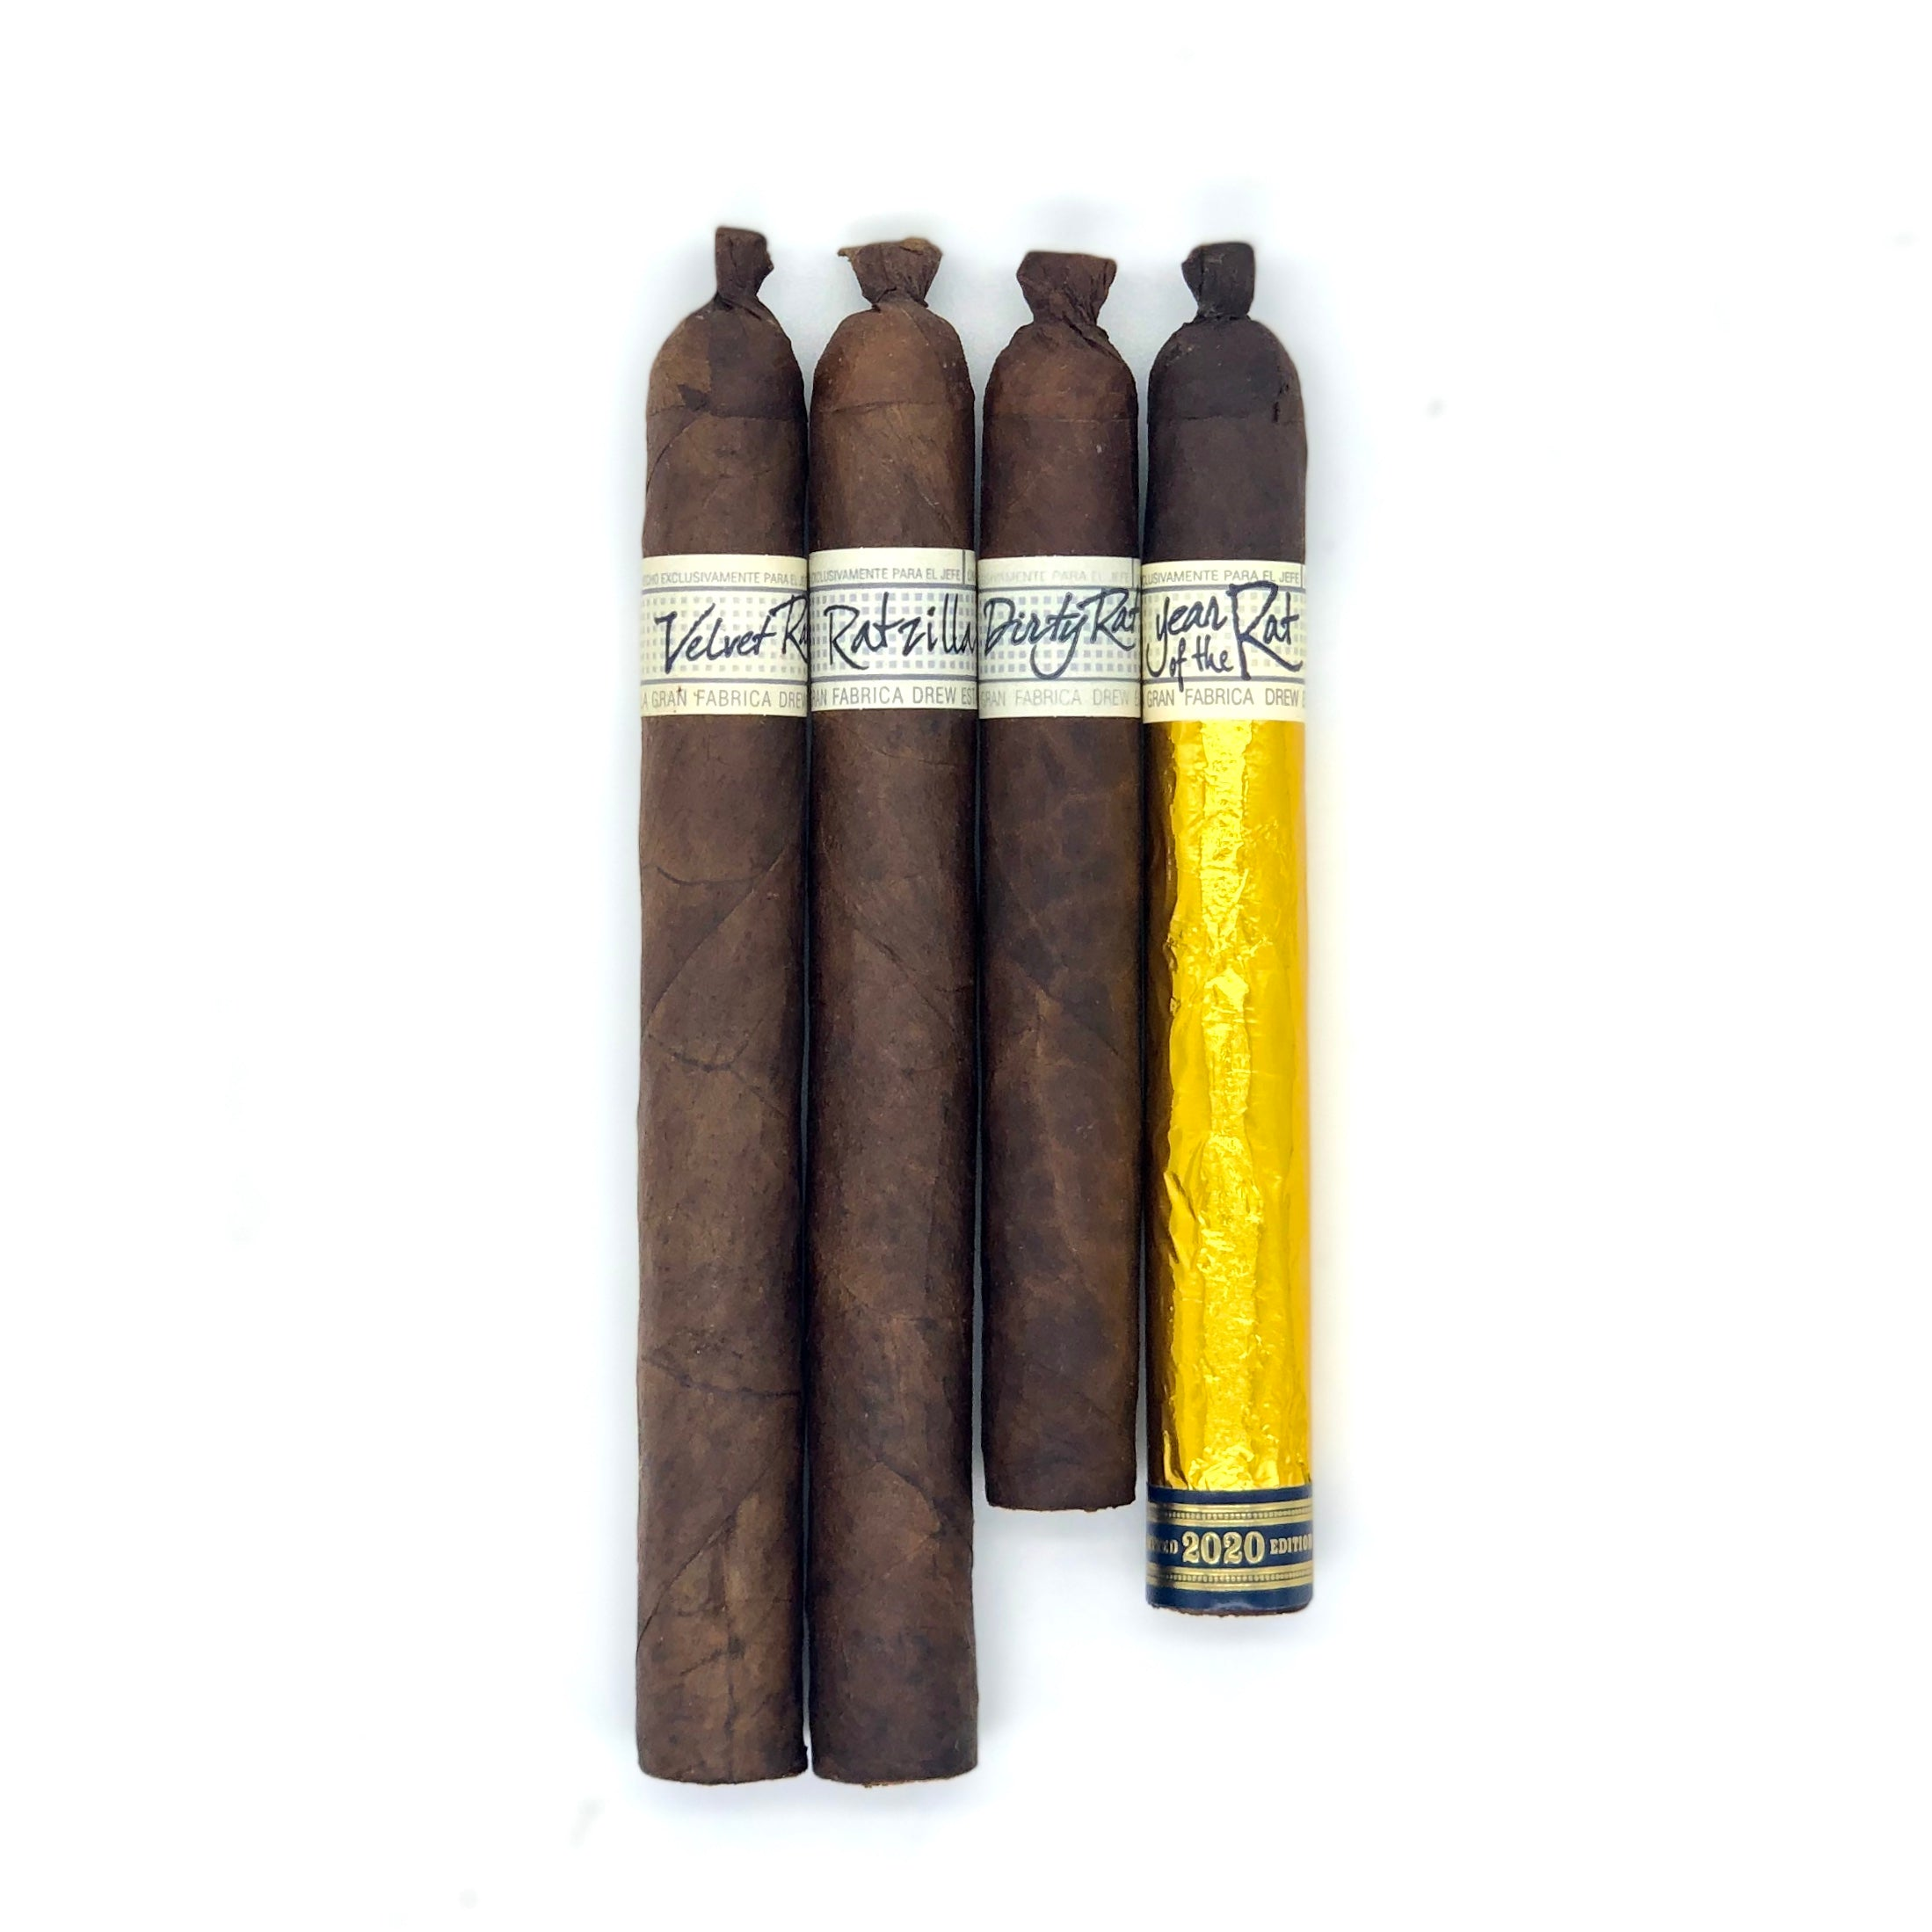 Liga Privada Rat Pack